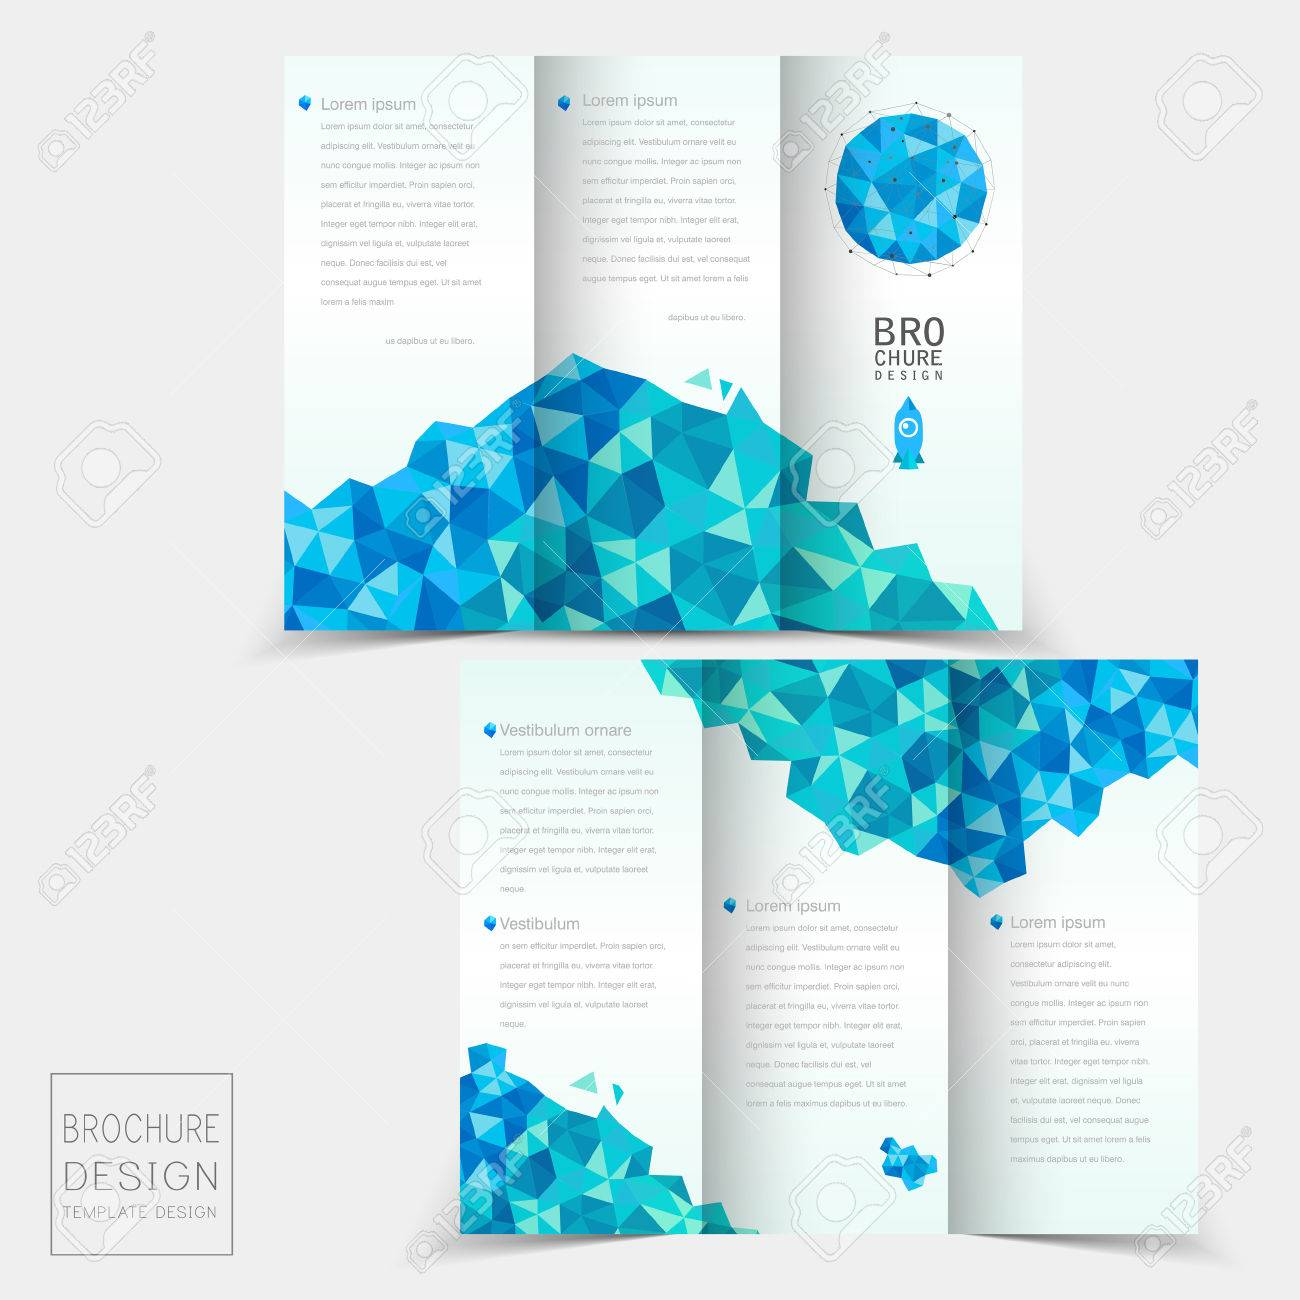 tri fold brochure template design with geometric blue crystal elements stock vector 34810724 - 3 Fold Brochure Design Templates